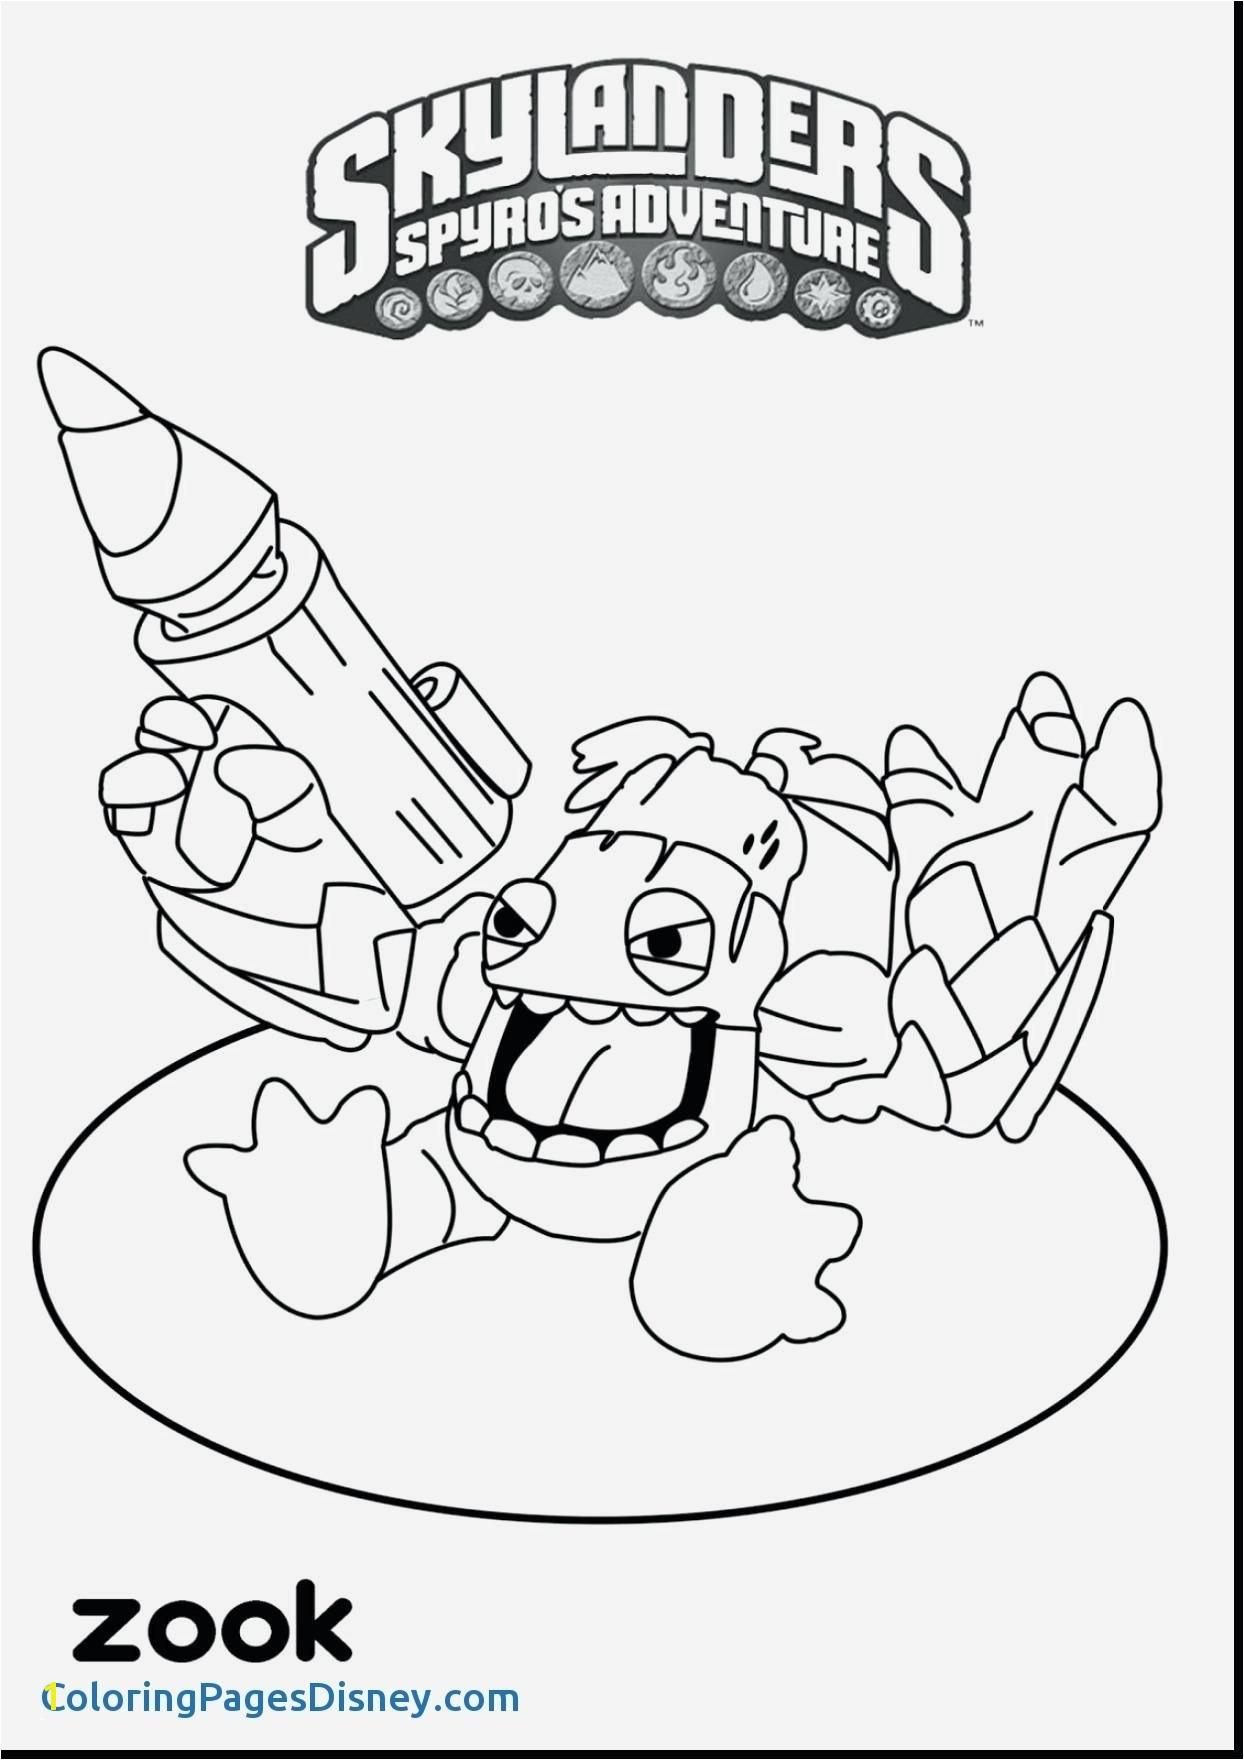 Elmo Christmas Coloring Pages Free New Free Coloring Pages Christmas Cards Katesgrove